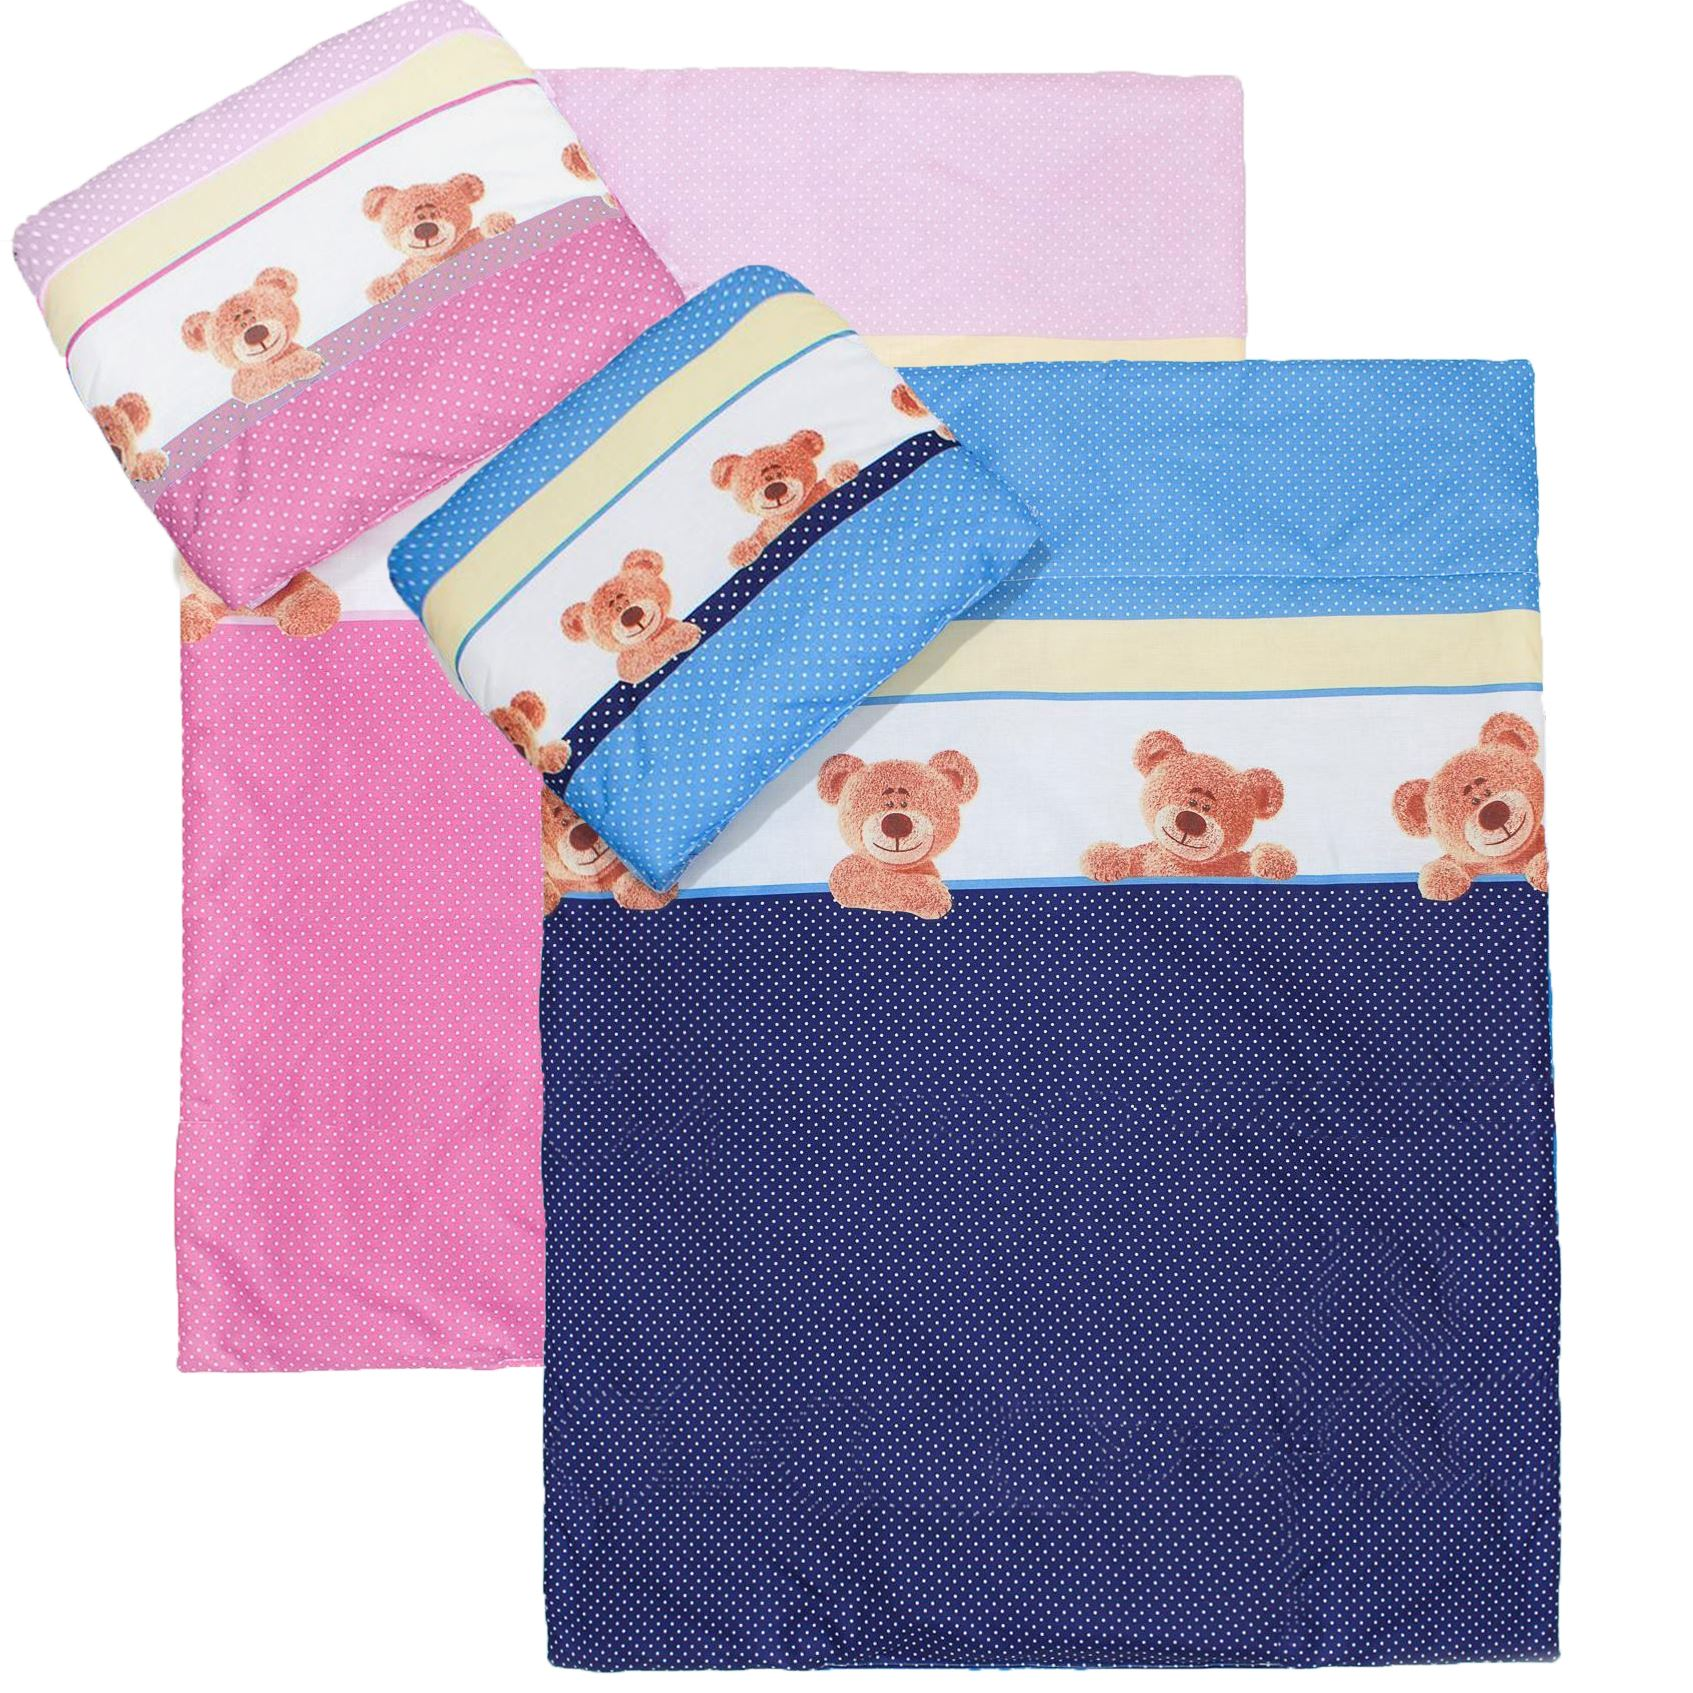 Sheet For Cot Cotbed Bear Moon Embroidery 6 Piece pcs Baby Nursery Bedding Set